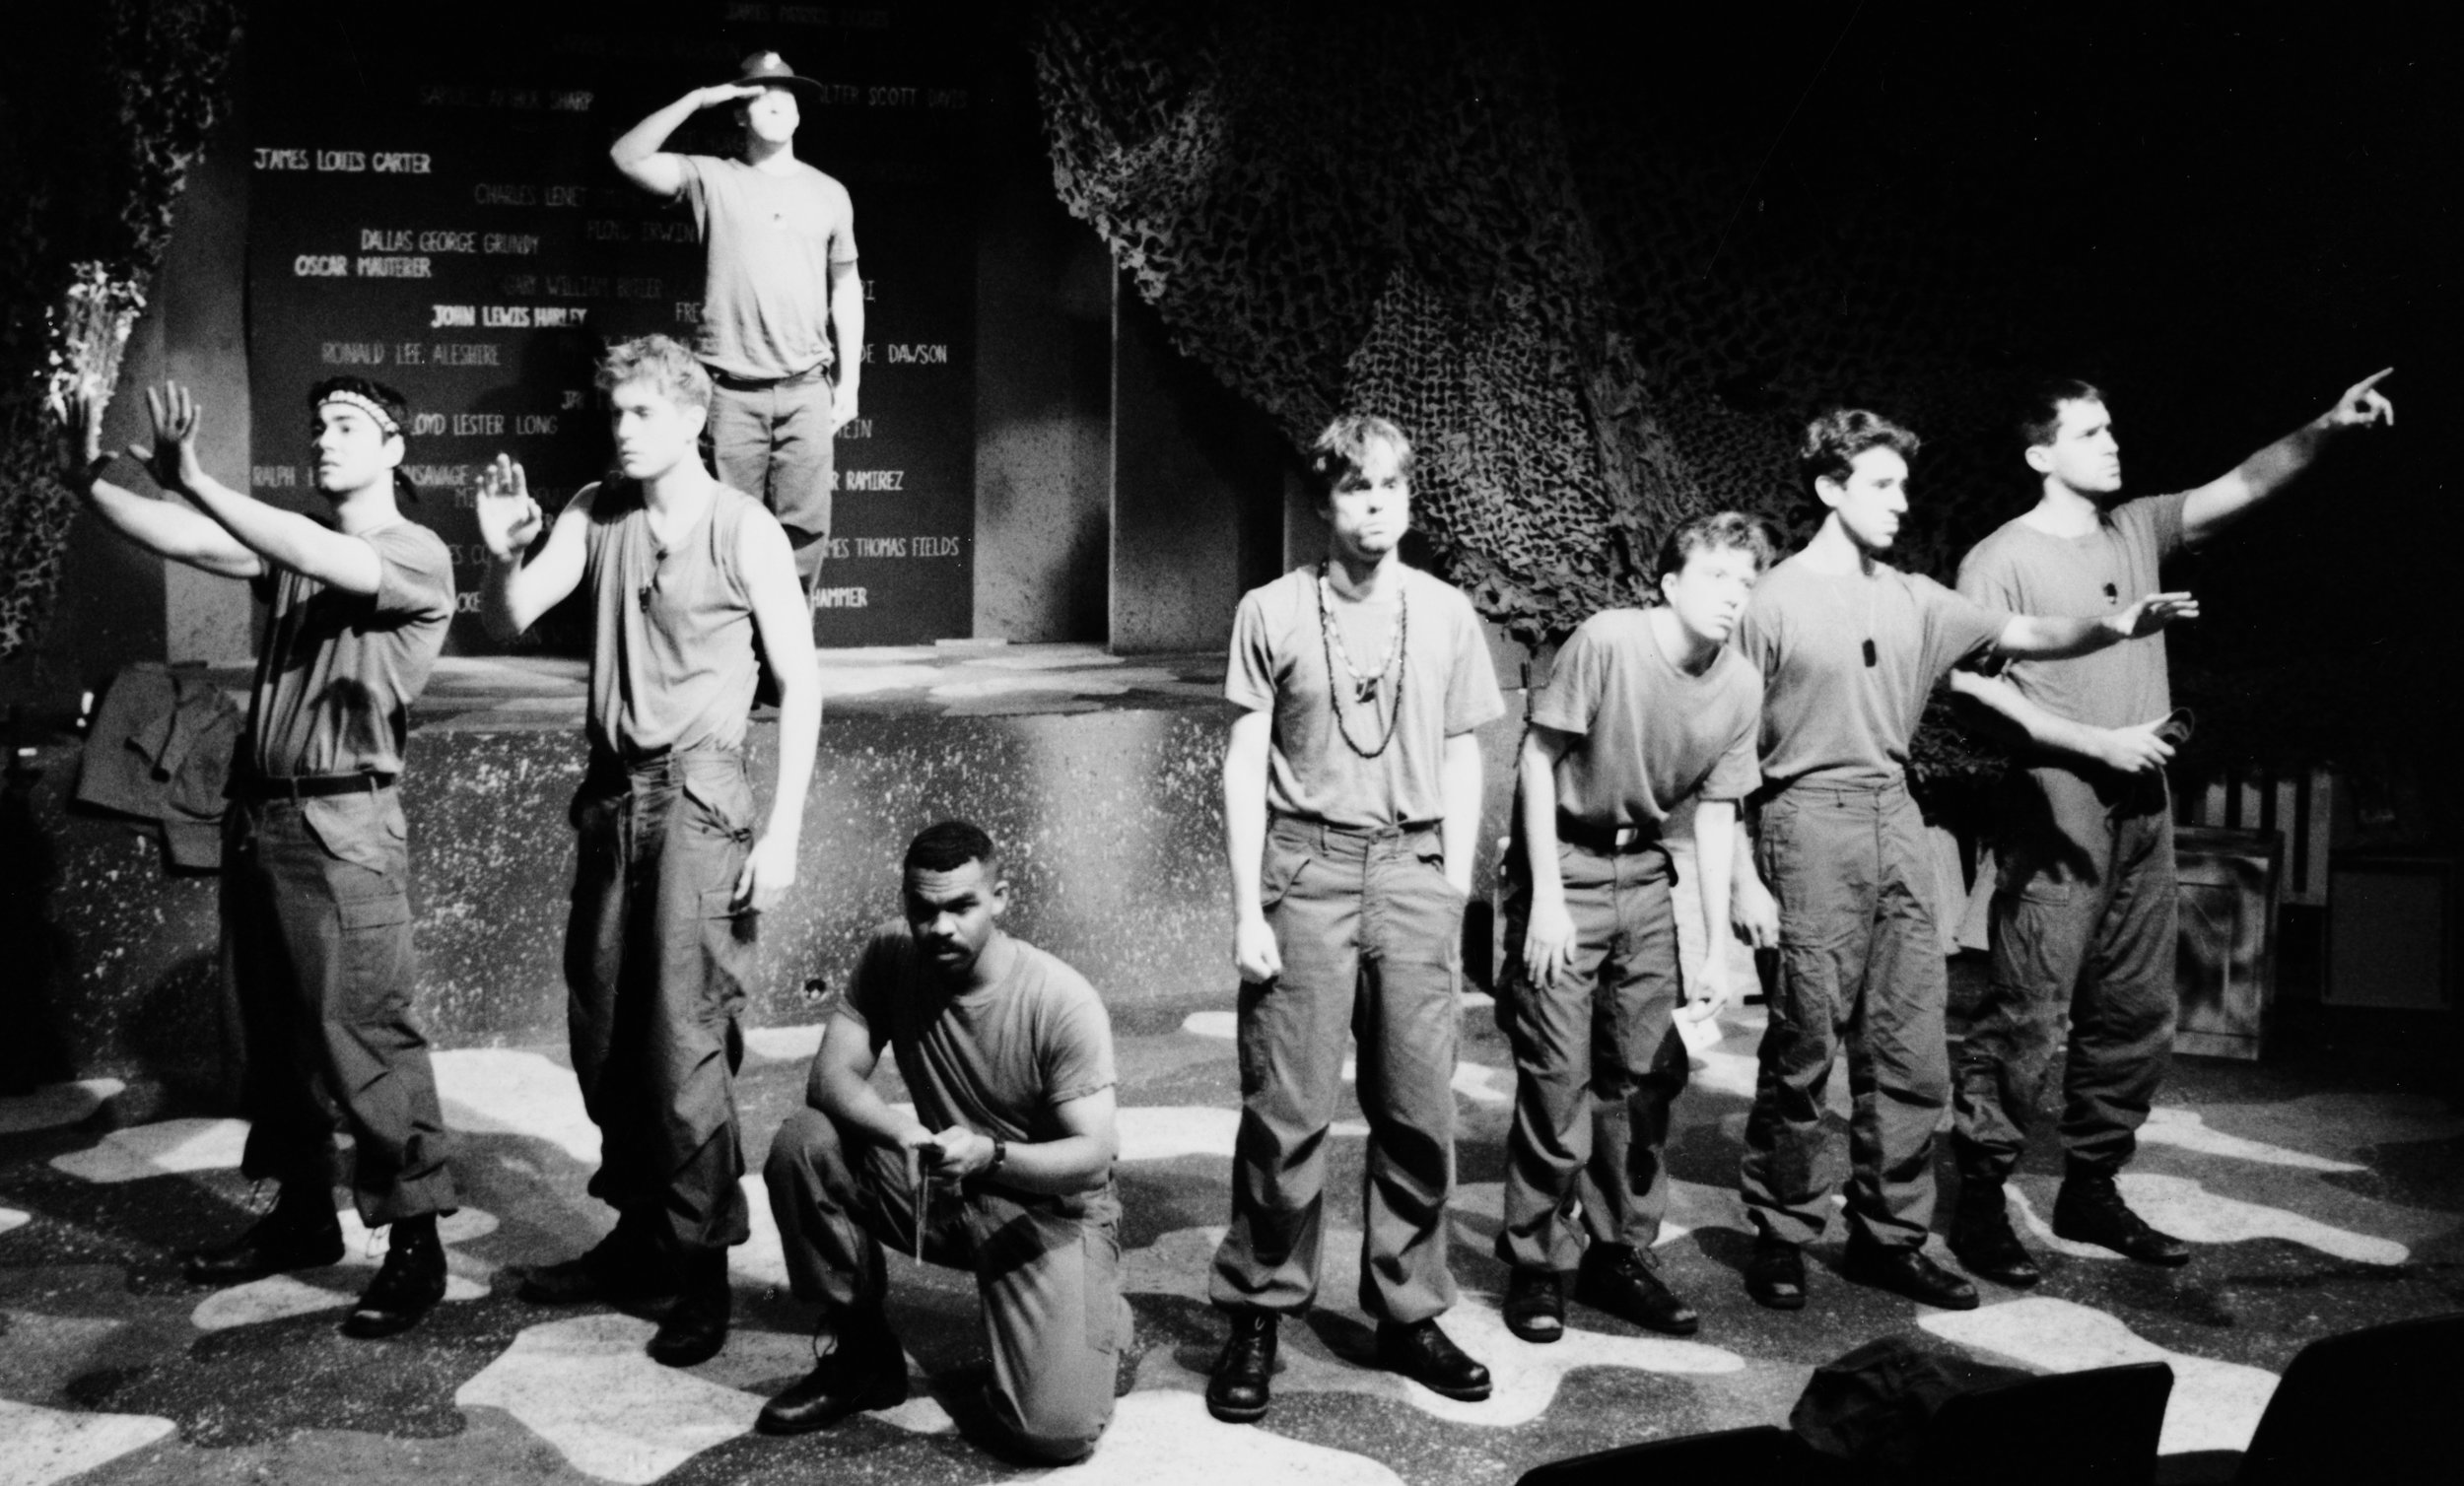 Chris Solari (Scooter), William Vogt (Dinky Dau), Peter Winfield (Sgt. Williams), Gene Fereaud (Habu), Andy Hungerford (Doc), Scott Freeburg (Baby San), Craig Bilsky (Professor), and Scott Donnelly (Little John) in Draw the Sneck Productions'1996 | 1997 productions of  Tracers , directed by John Drouillard.  Photo by Paul Backer.